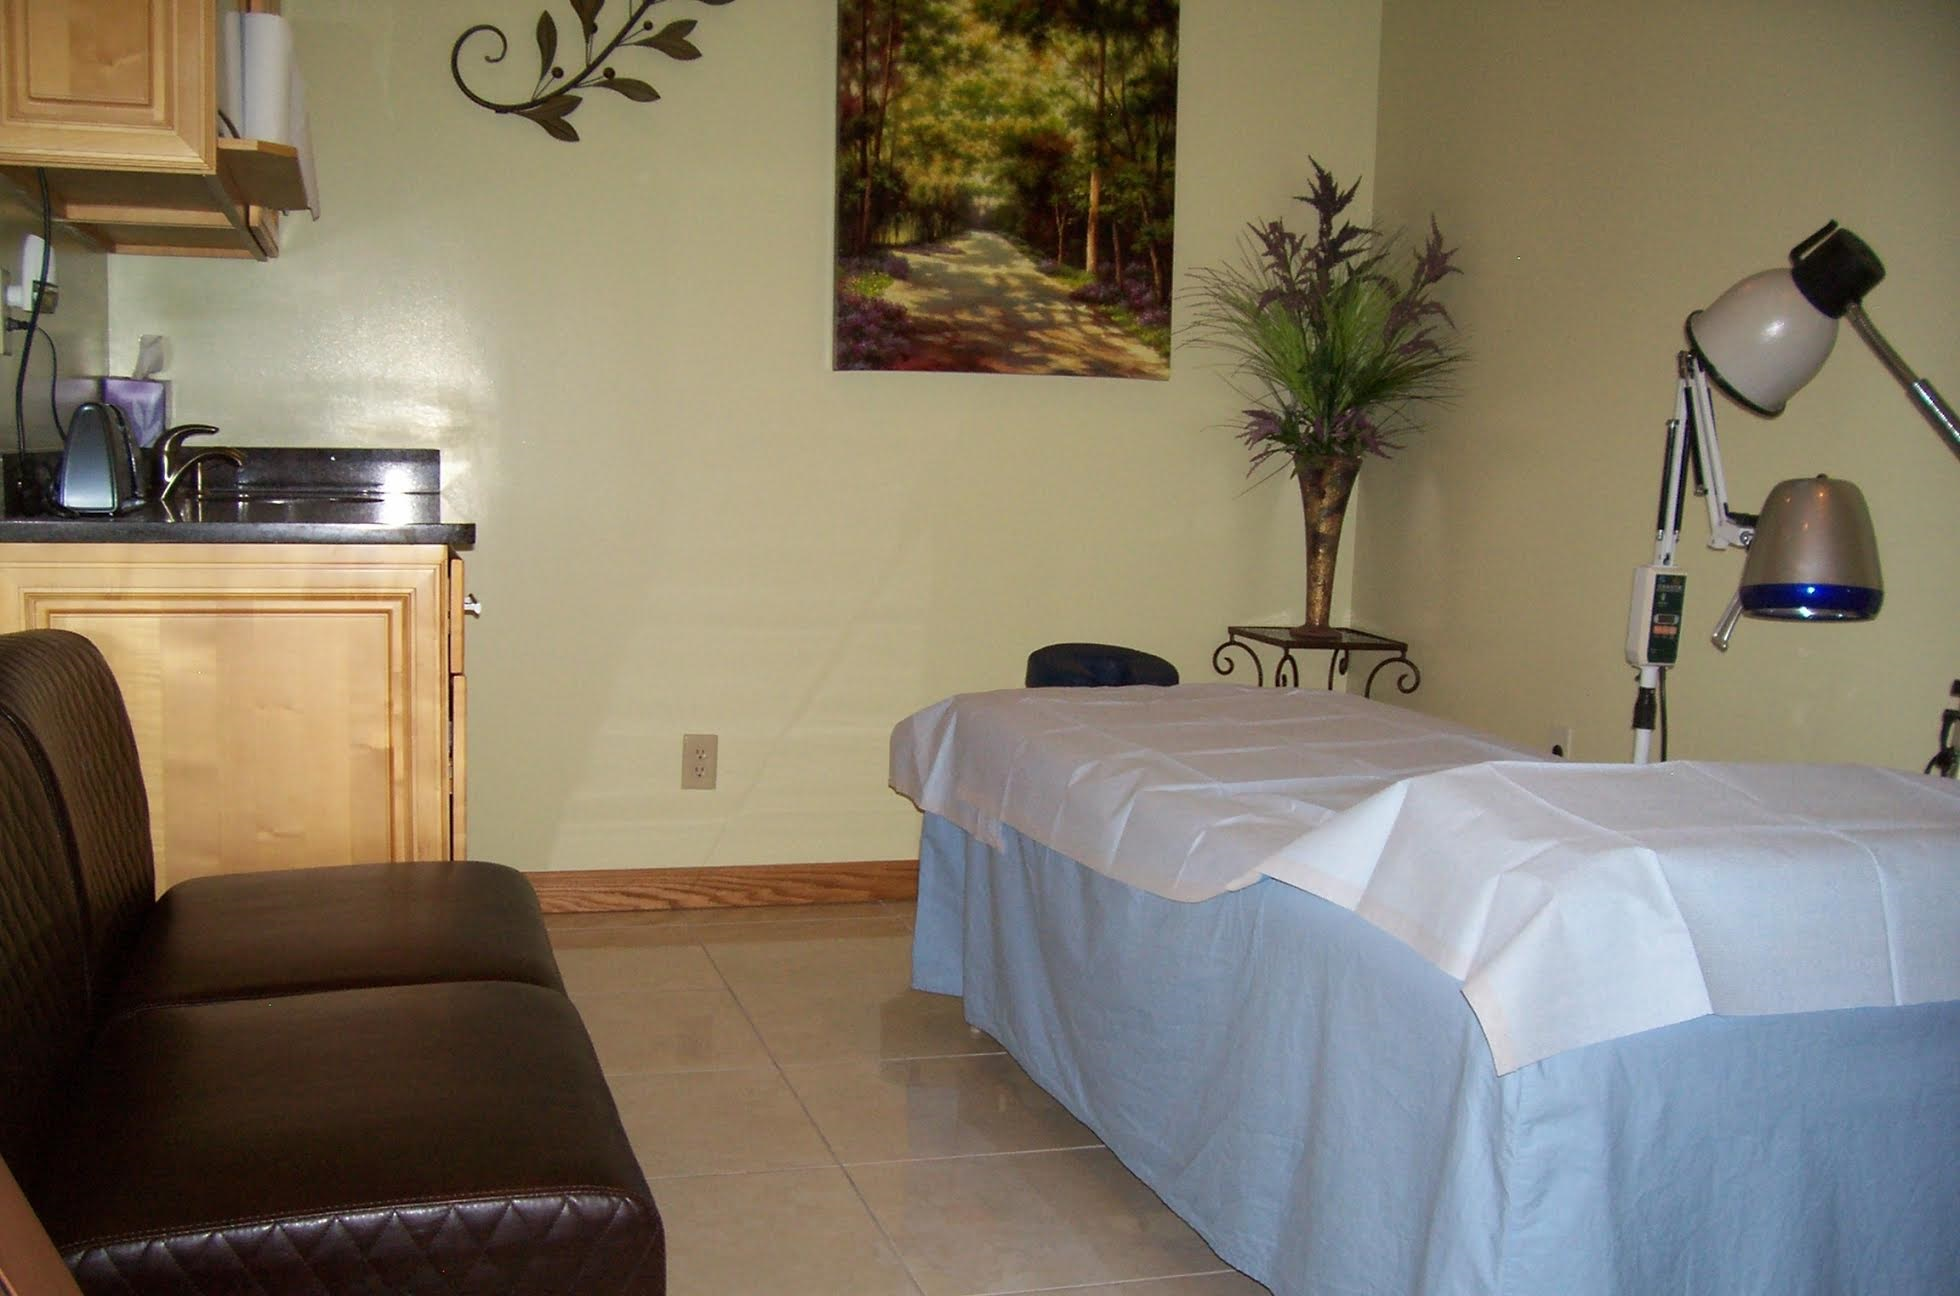 tcm-quincy ma-acupuncture clinic-massage therapy-2